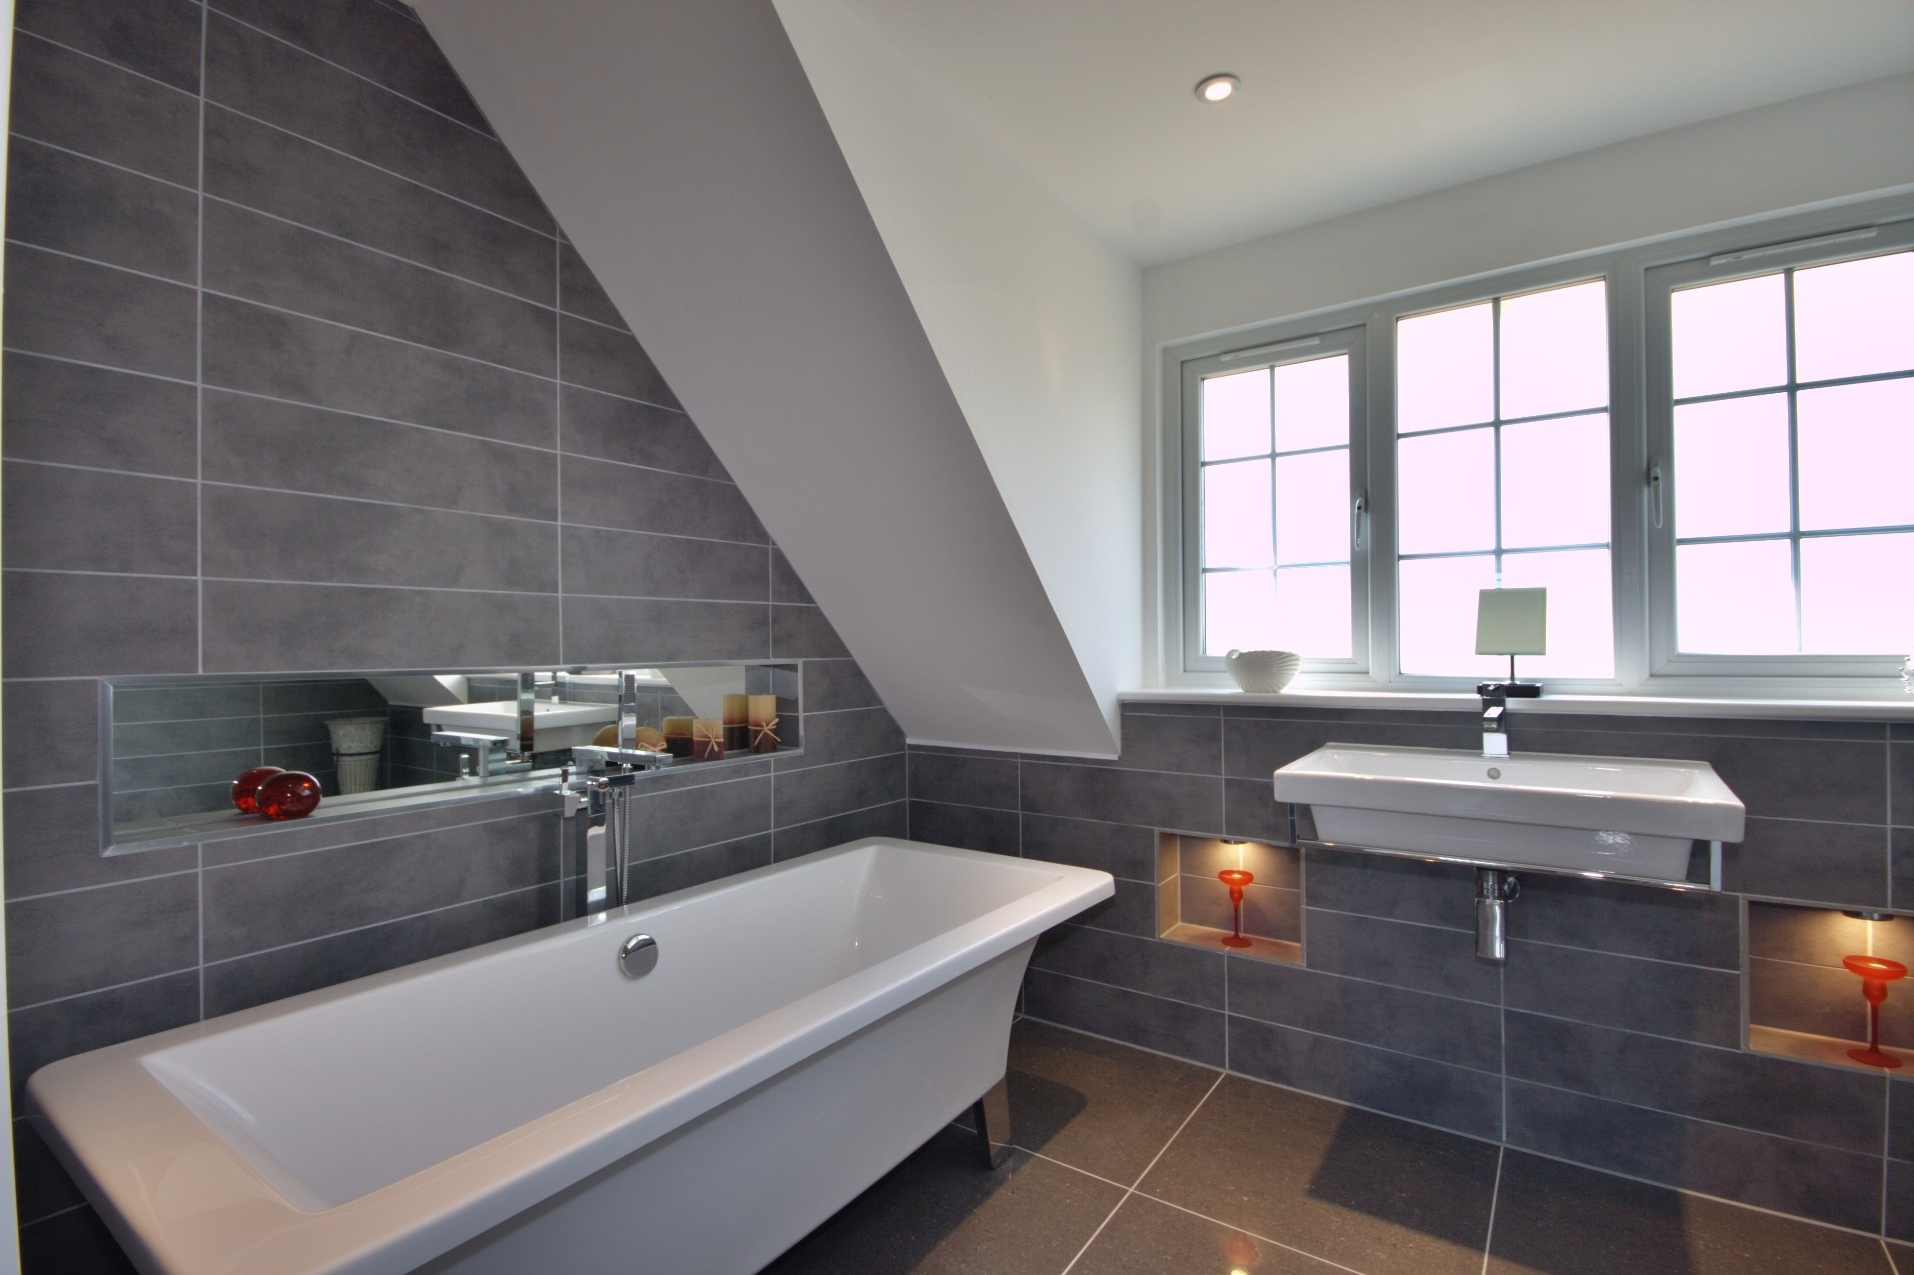 7 Tips For An En Suite Bathroom Chadwicks Blog Small Ensuite Bathroom Ireland